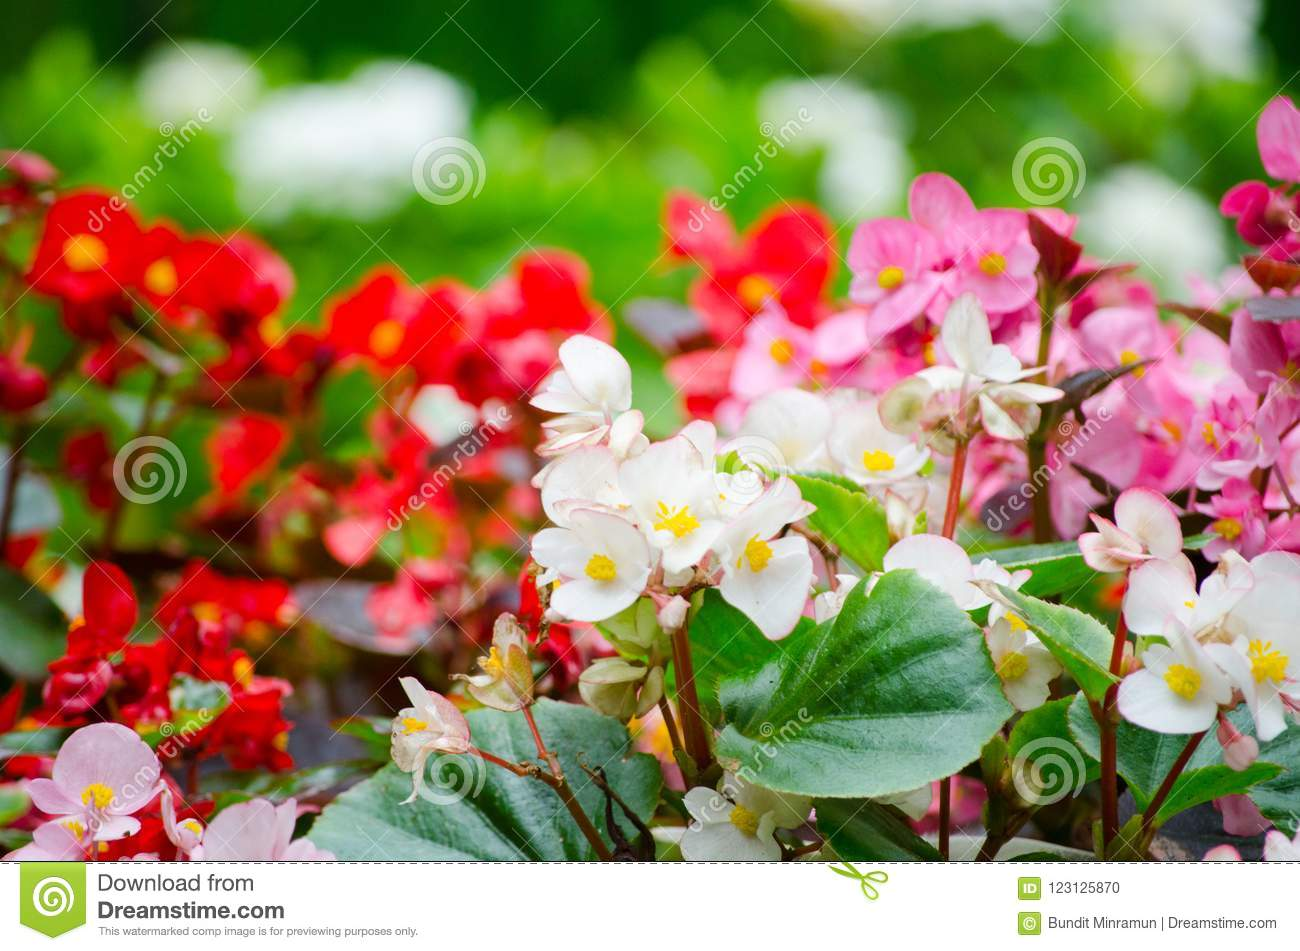 Beautiful red white and pink semperflorens begonia blooming flowers download beautiful red white and pink semperflorens begonia blooming flowers in a spring season at mightylinksfo